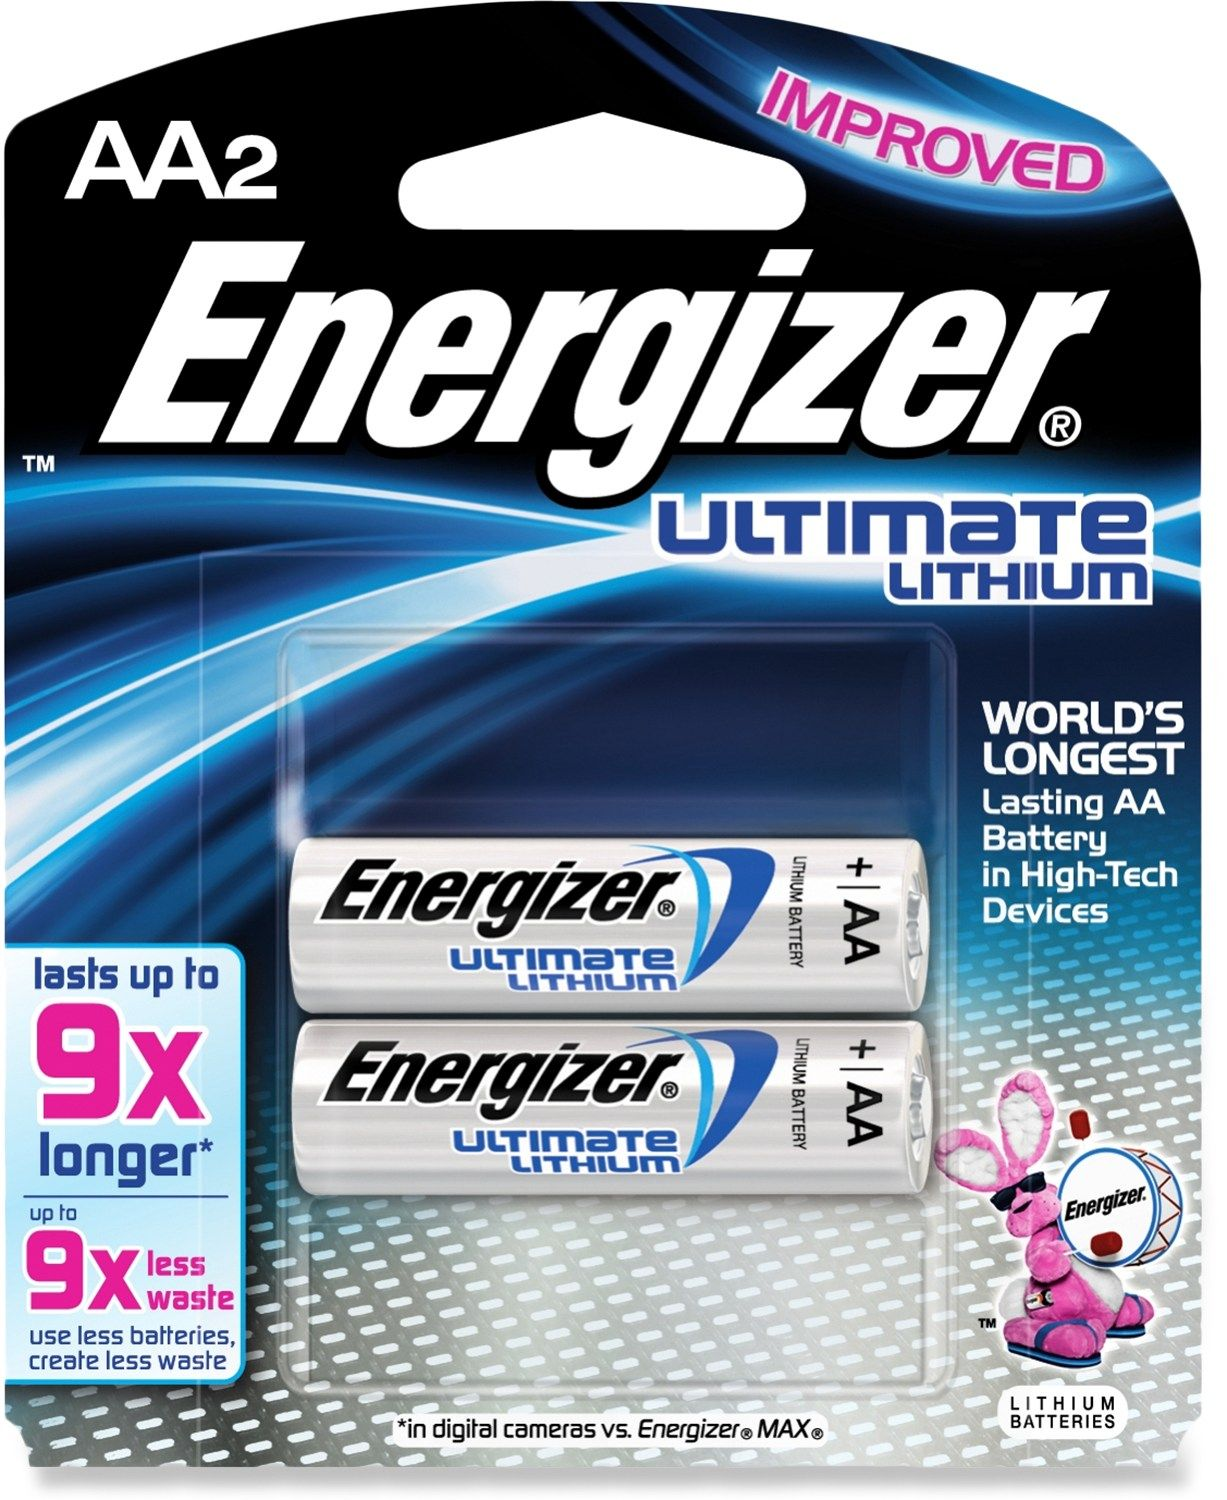 Energizer Lithium Aa Batteries Package Of 2 Energizer Battery Energizer Batteries